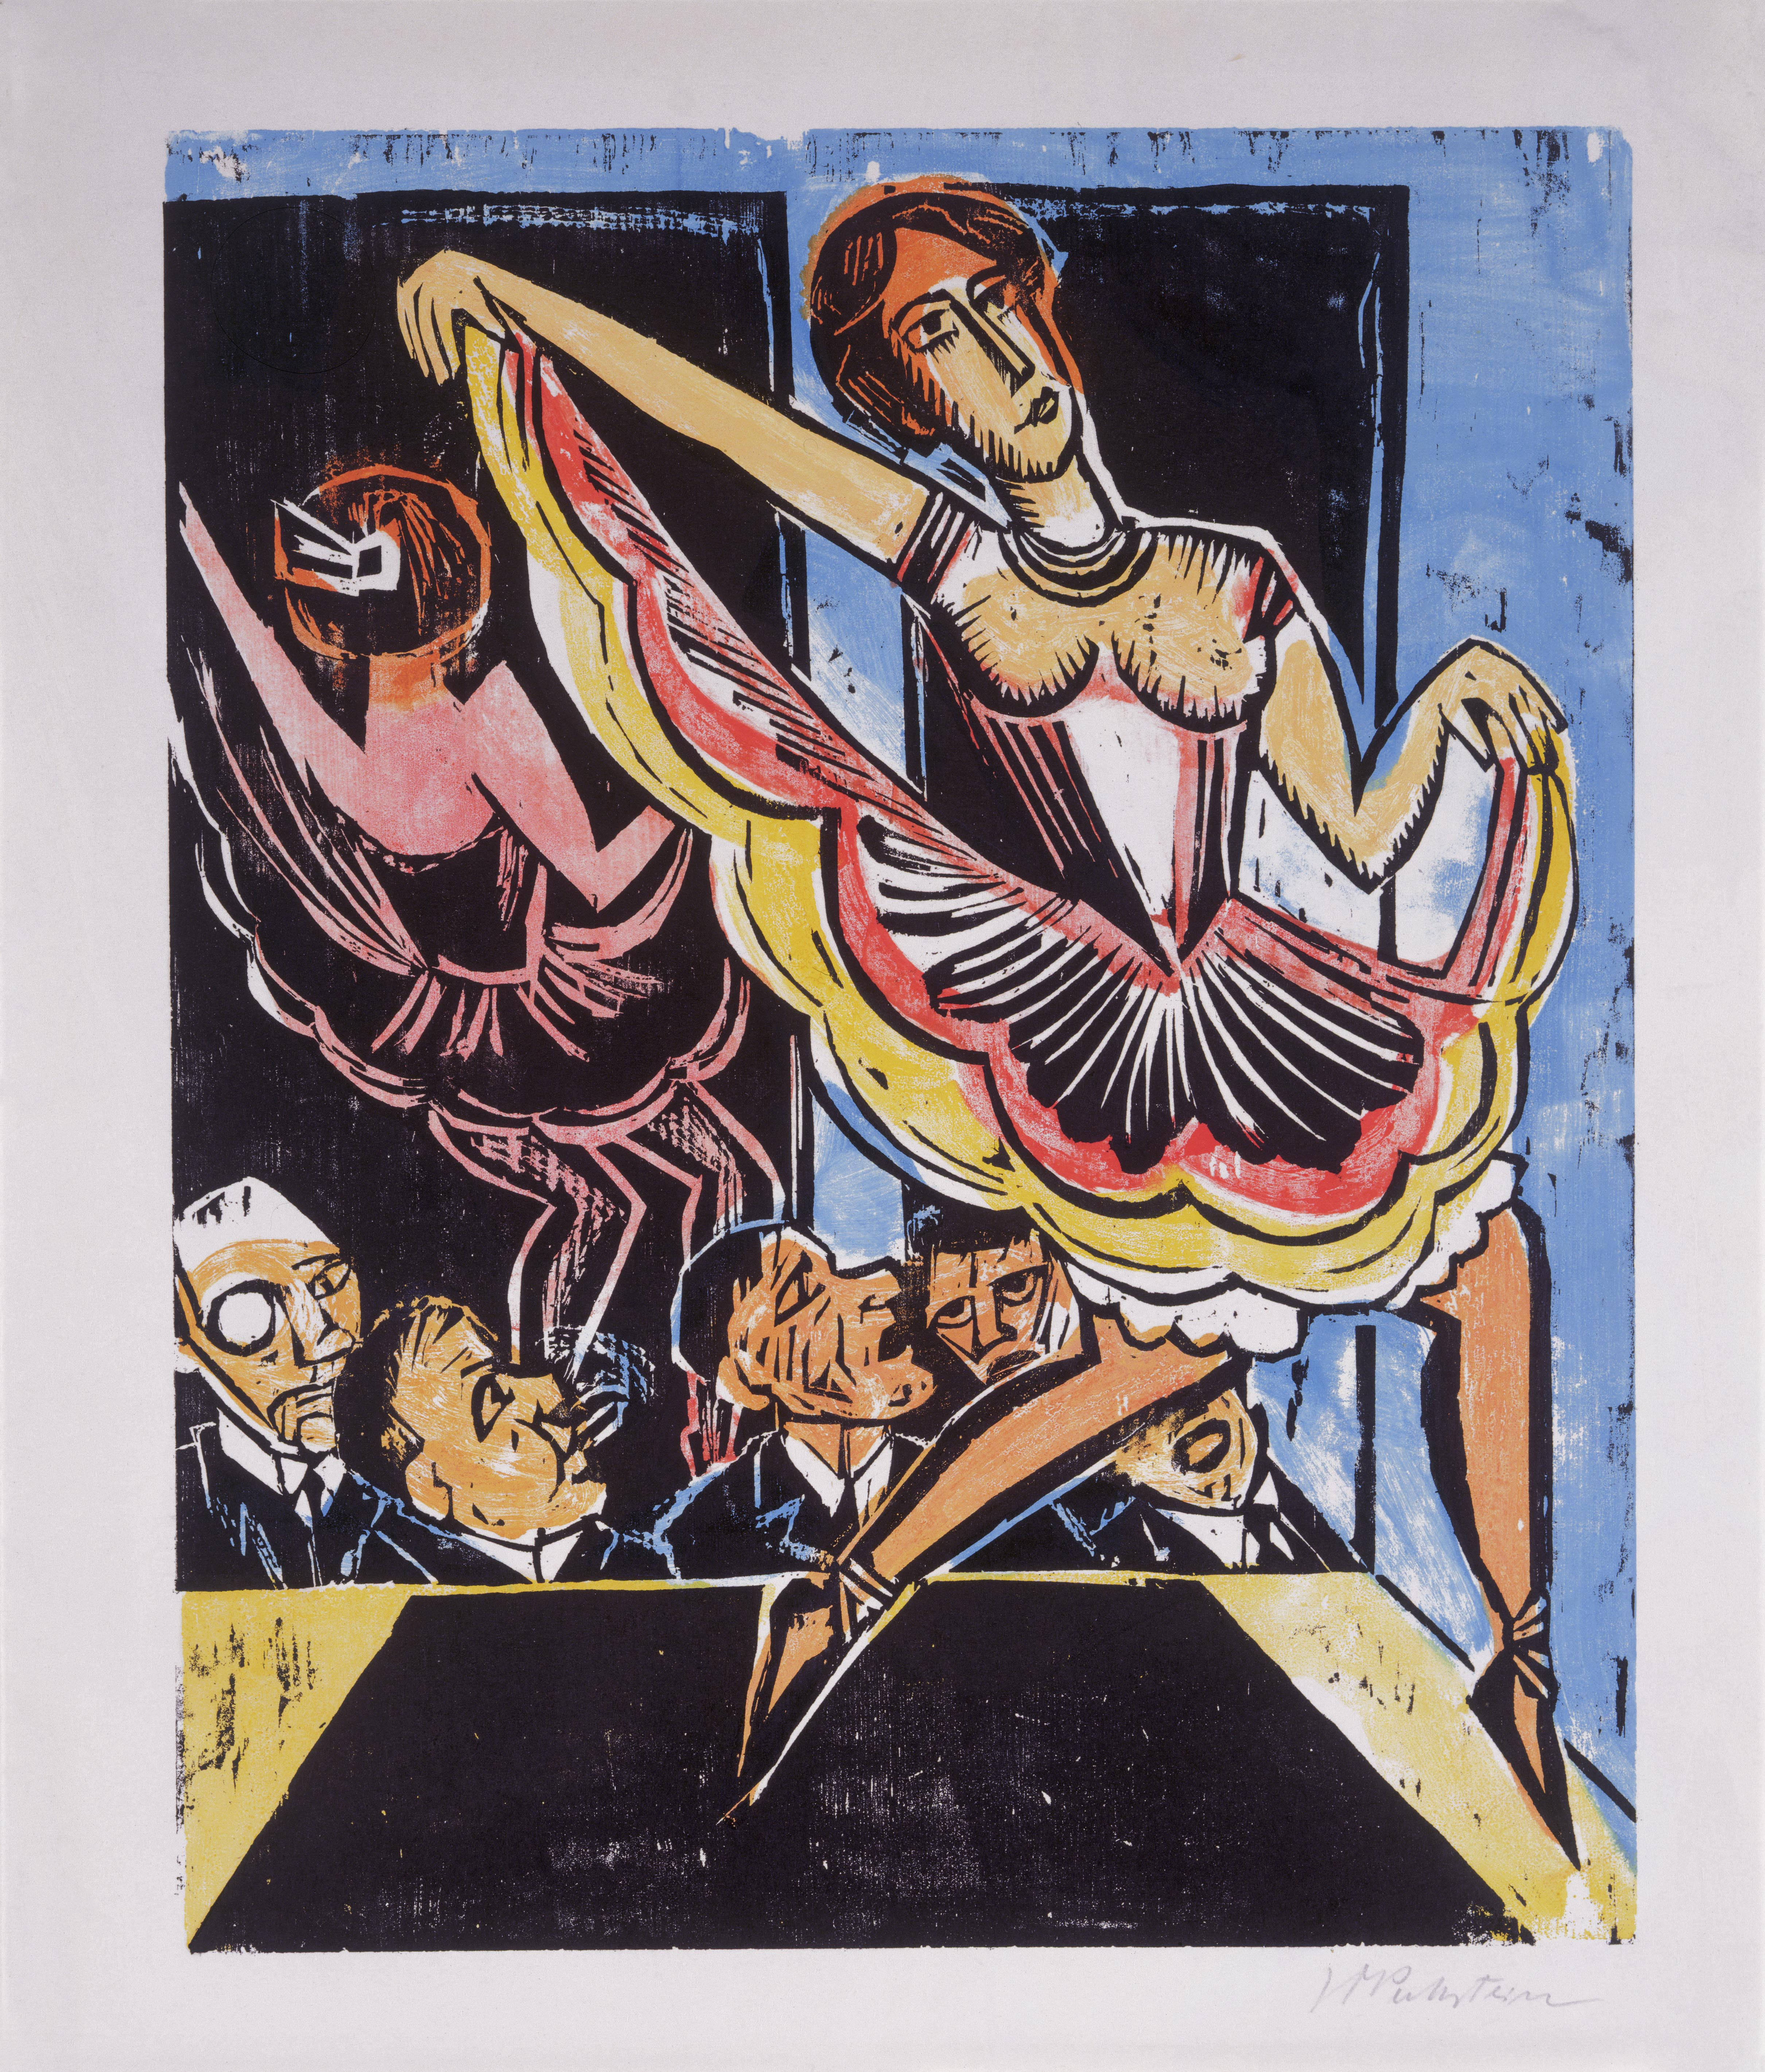 Max Pechstein, Female Dancer in the Mirror, 1923